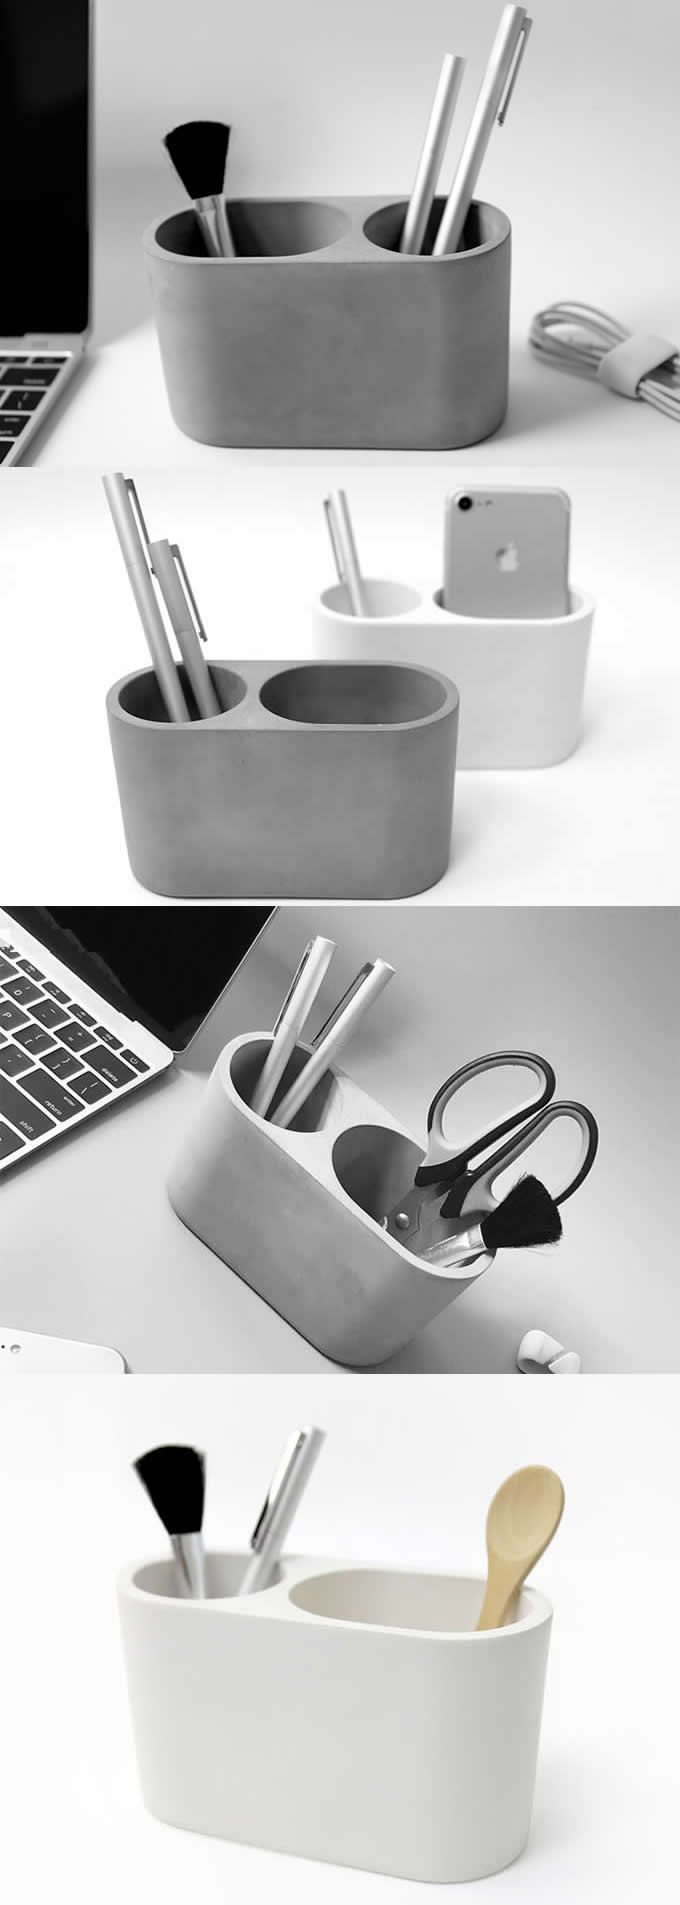 Concrete Multi Function Minimalist Vase Office Desk Organizer Pen Pencil Holder Stand Paper Clip Holde Office Supplies Gift Cool Office Supplies Office Gifts